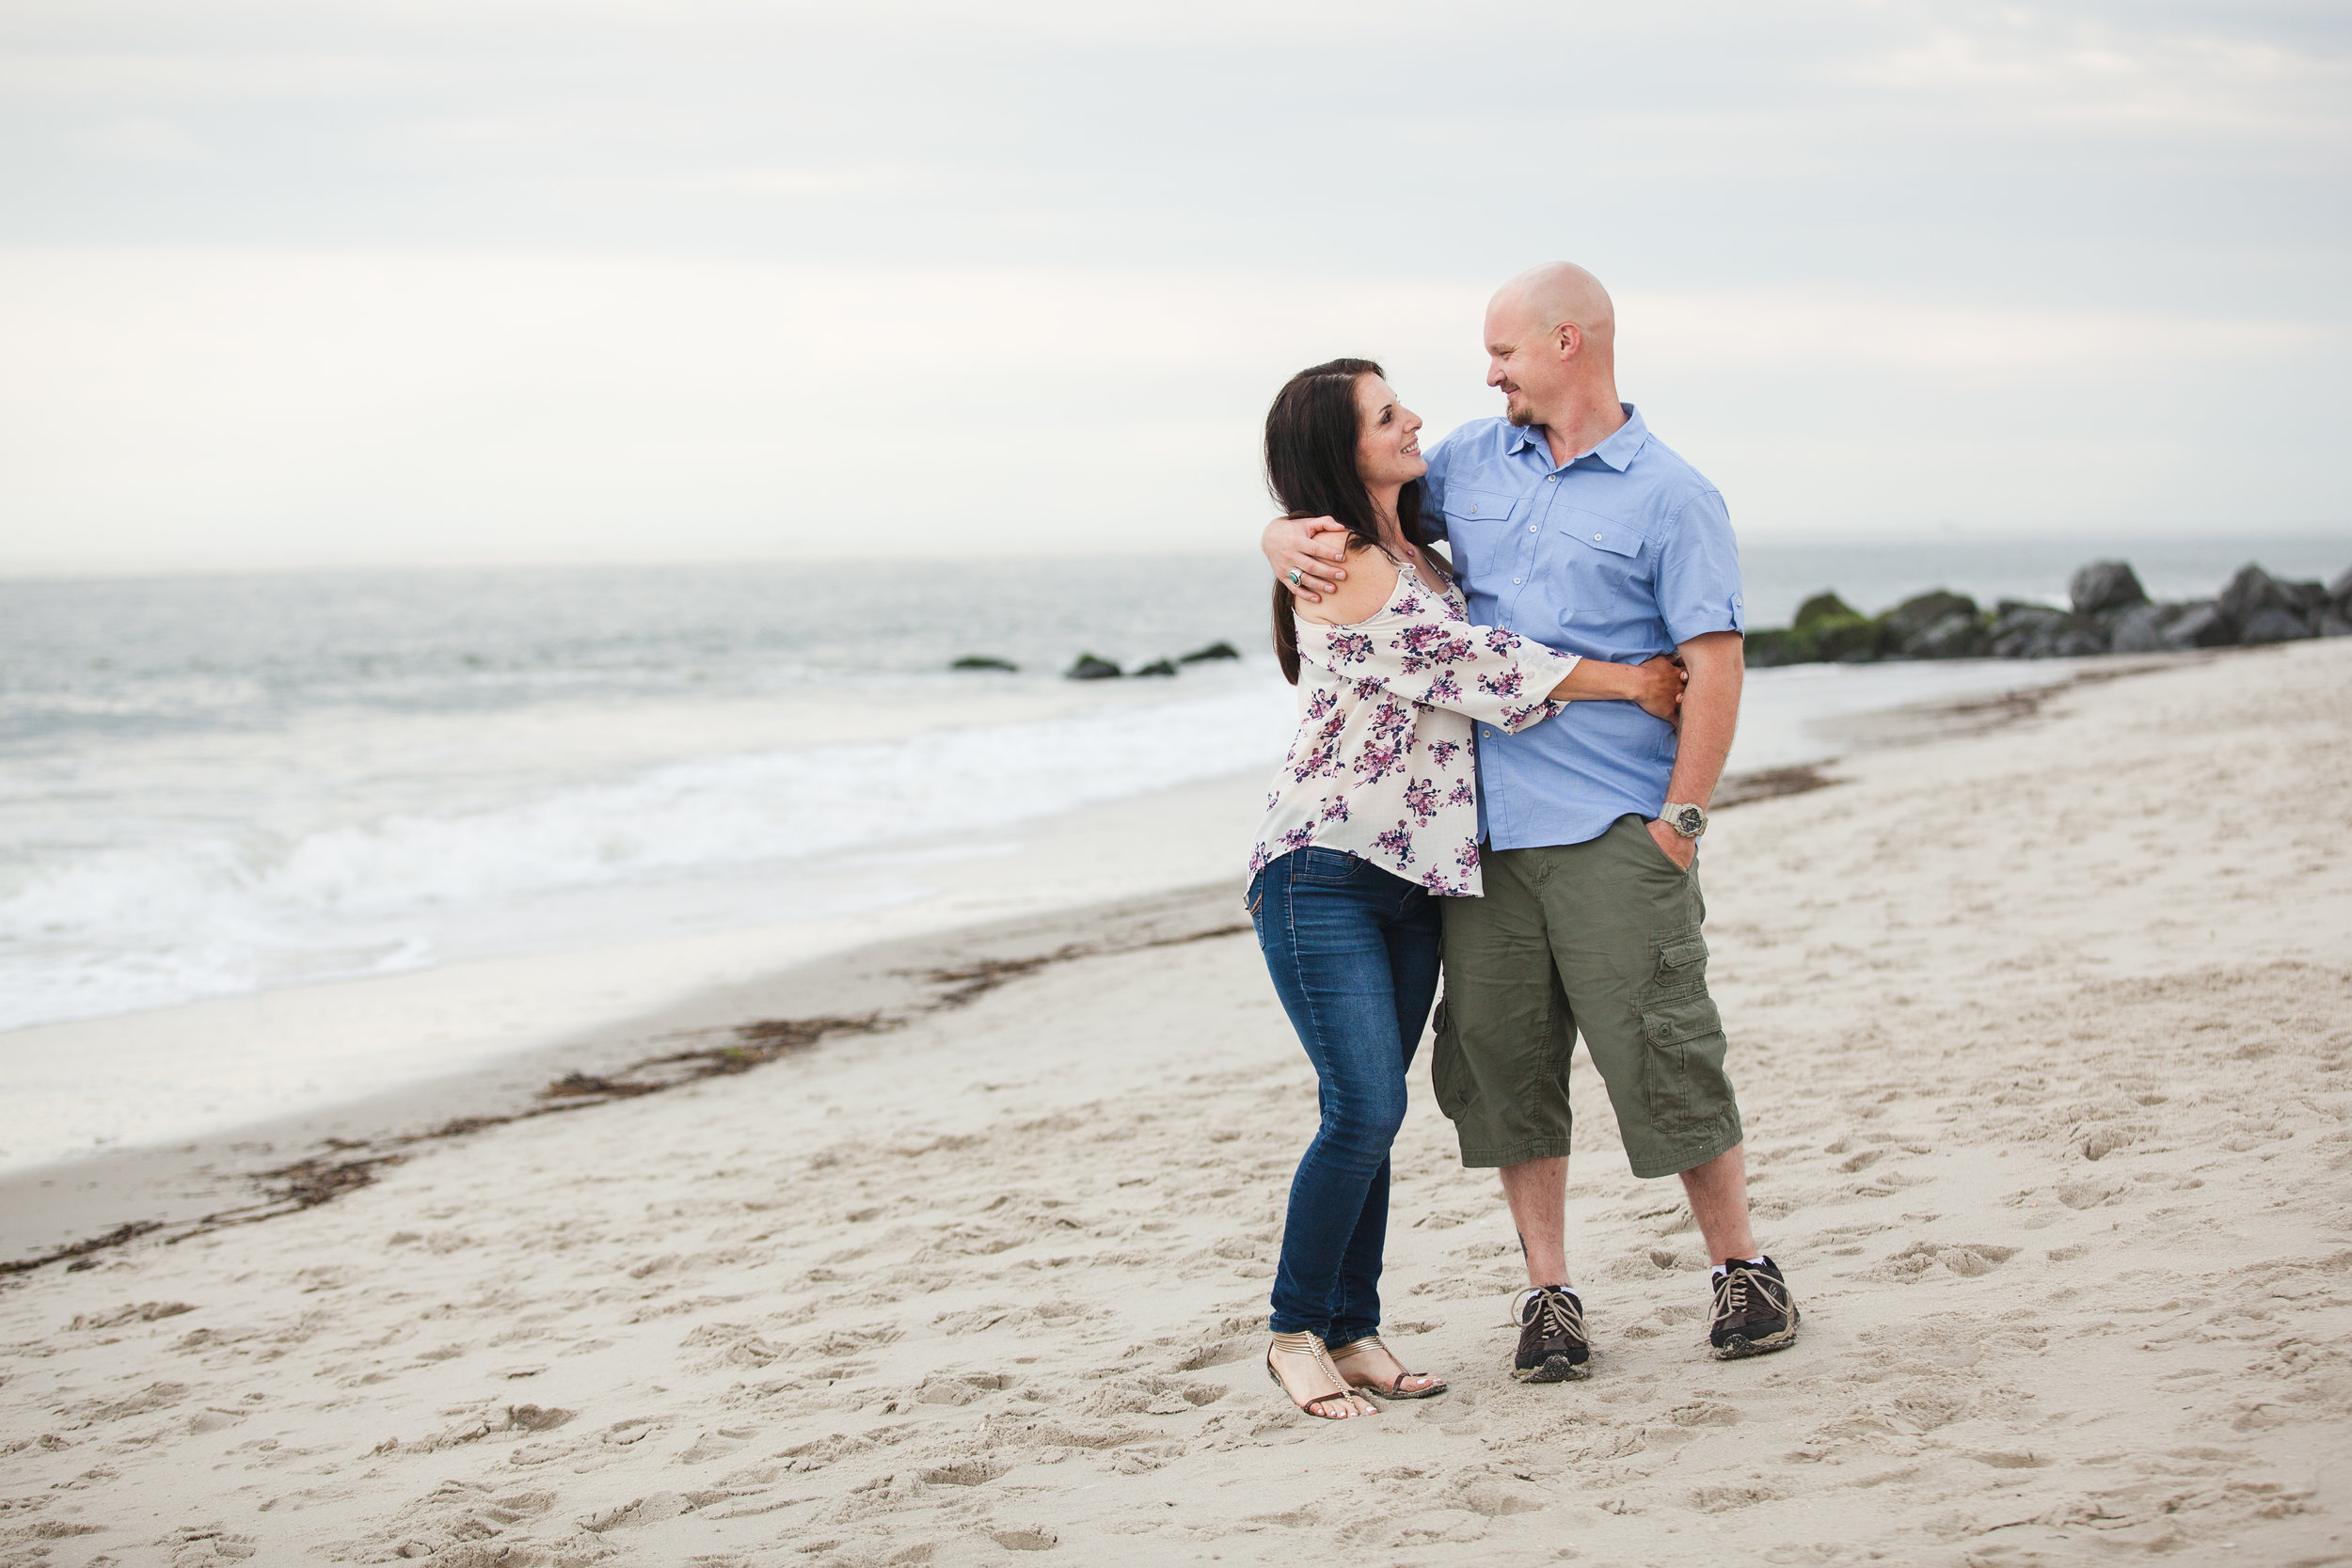 StaceyandJohnEngagementPrints-4.jpg